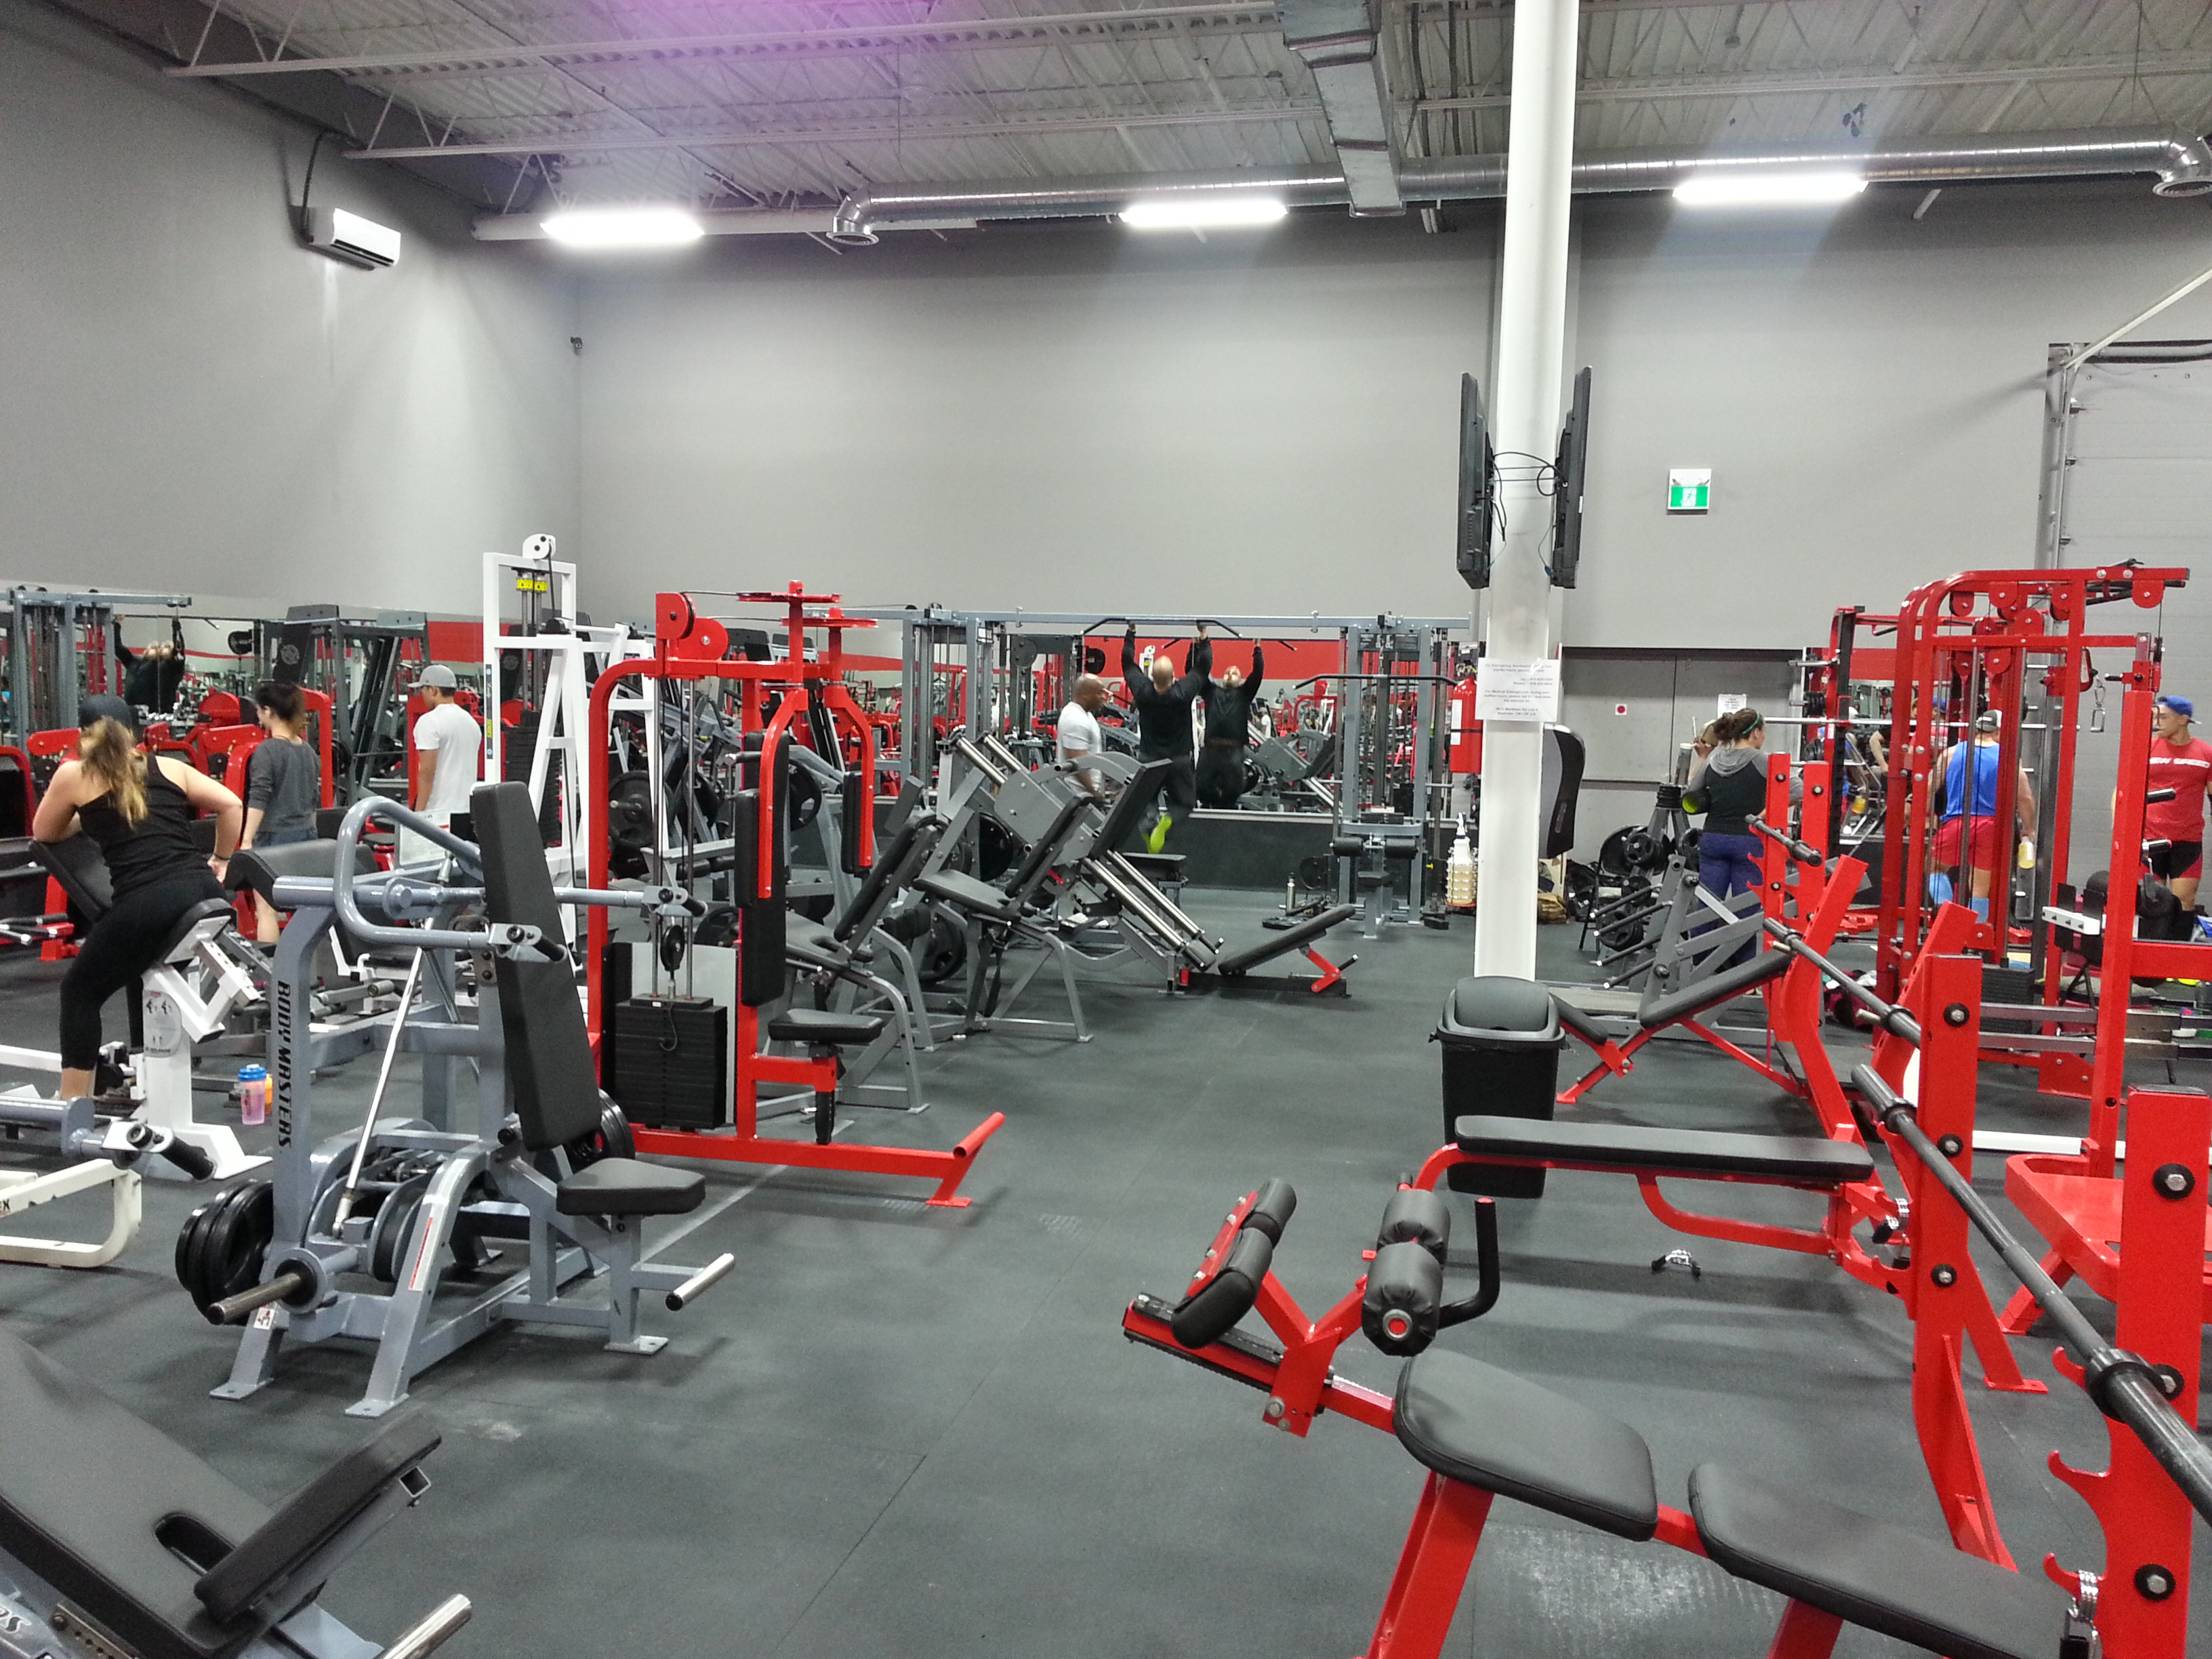 Iron Fitness Strength Club 24 hour Fitness Gym Markham